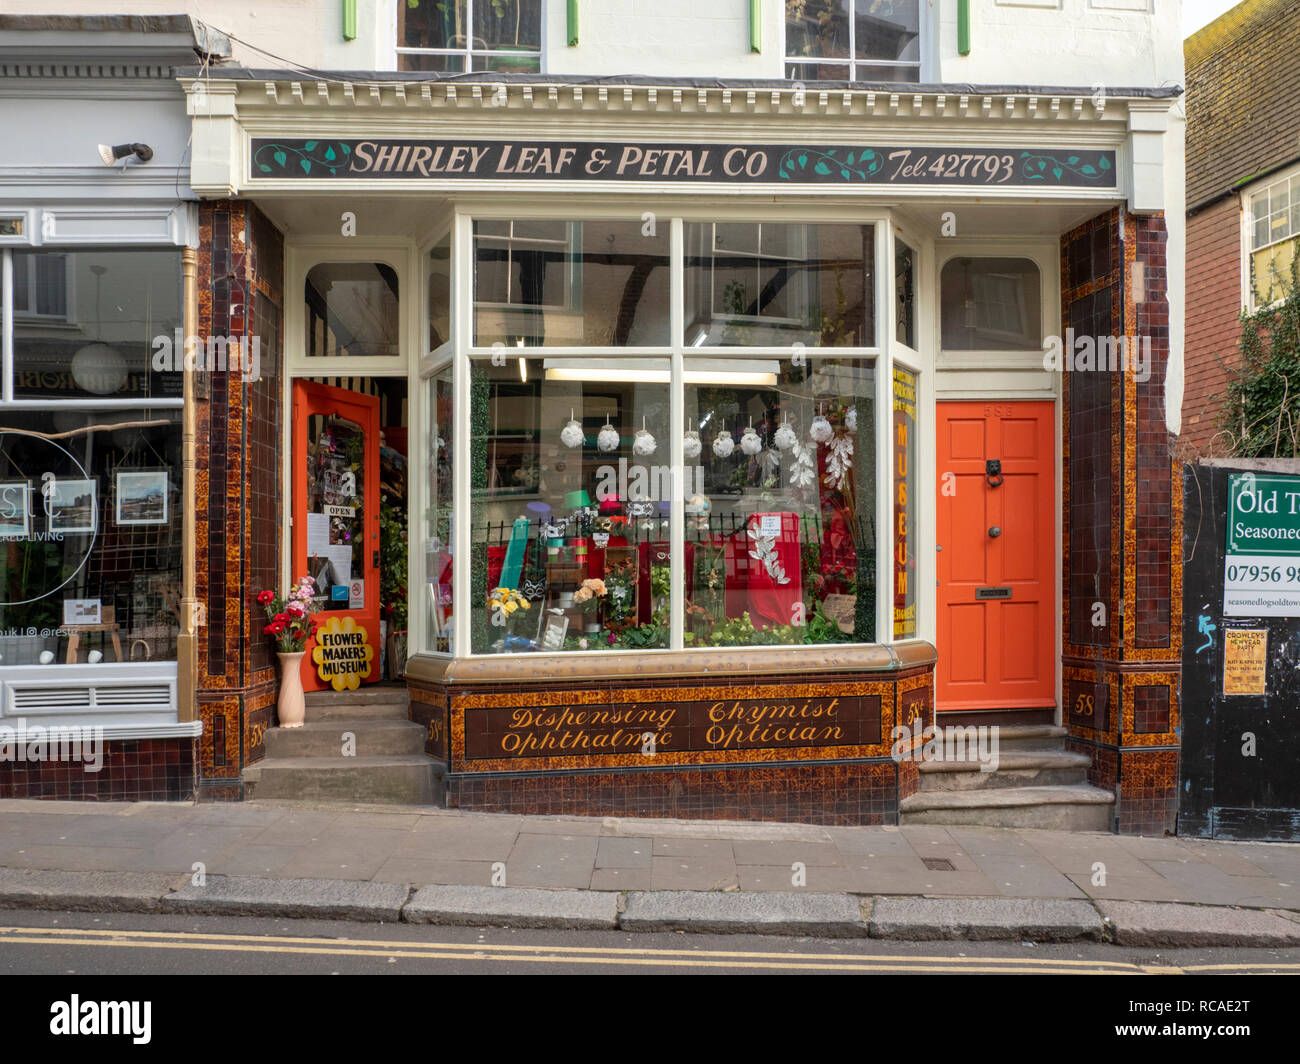 Shirley Leaf and Petal shop in Hastings Old Town East Sussex UK - Stock Image